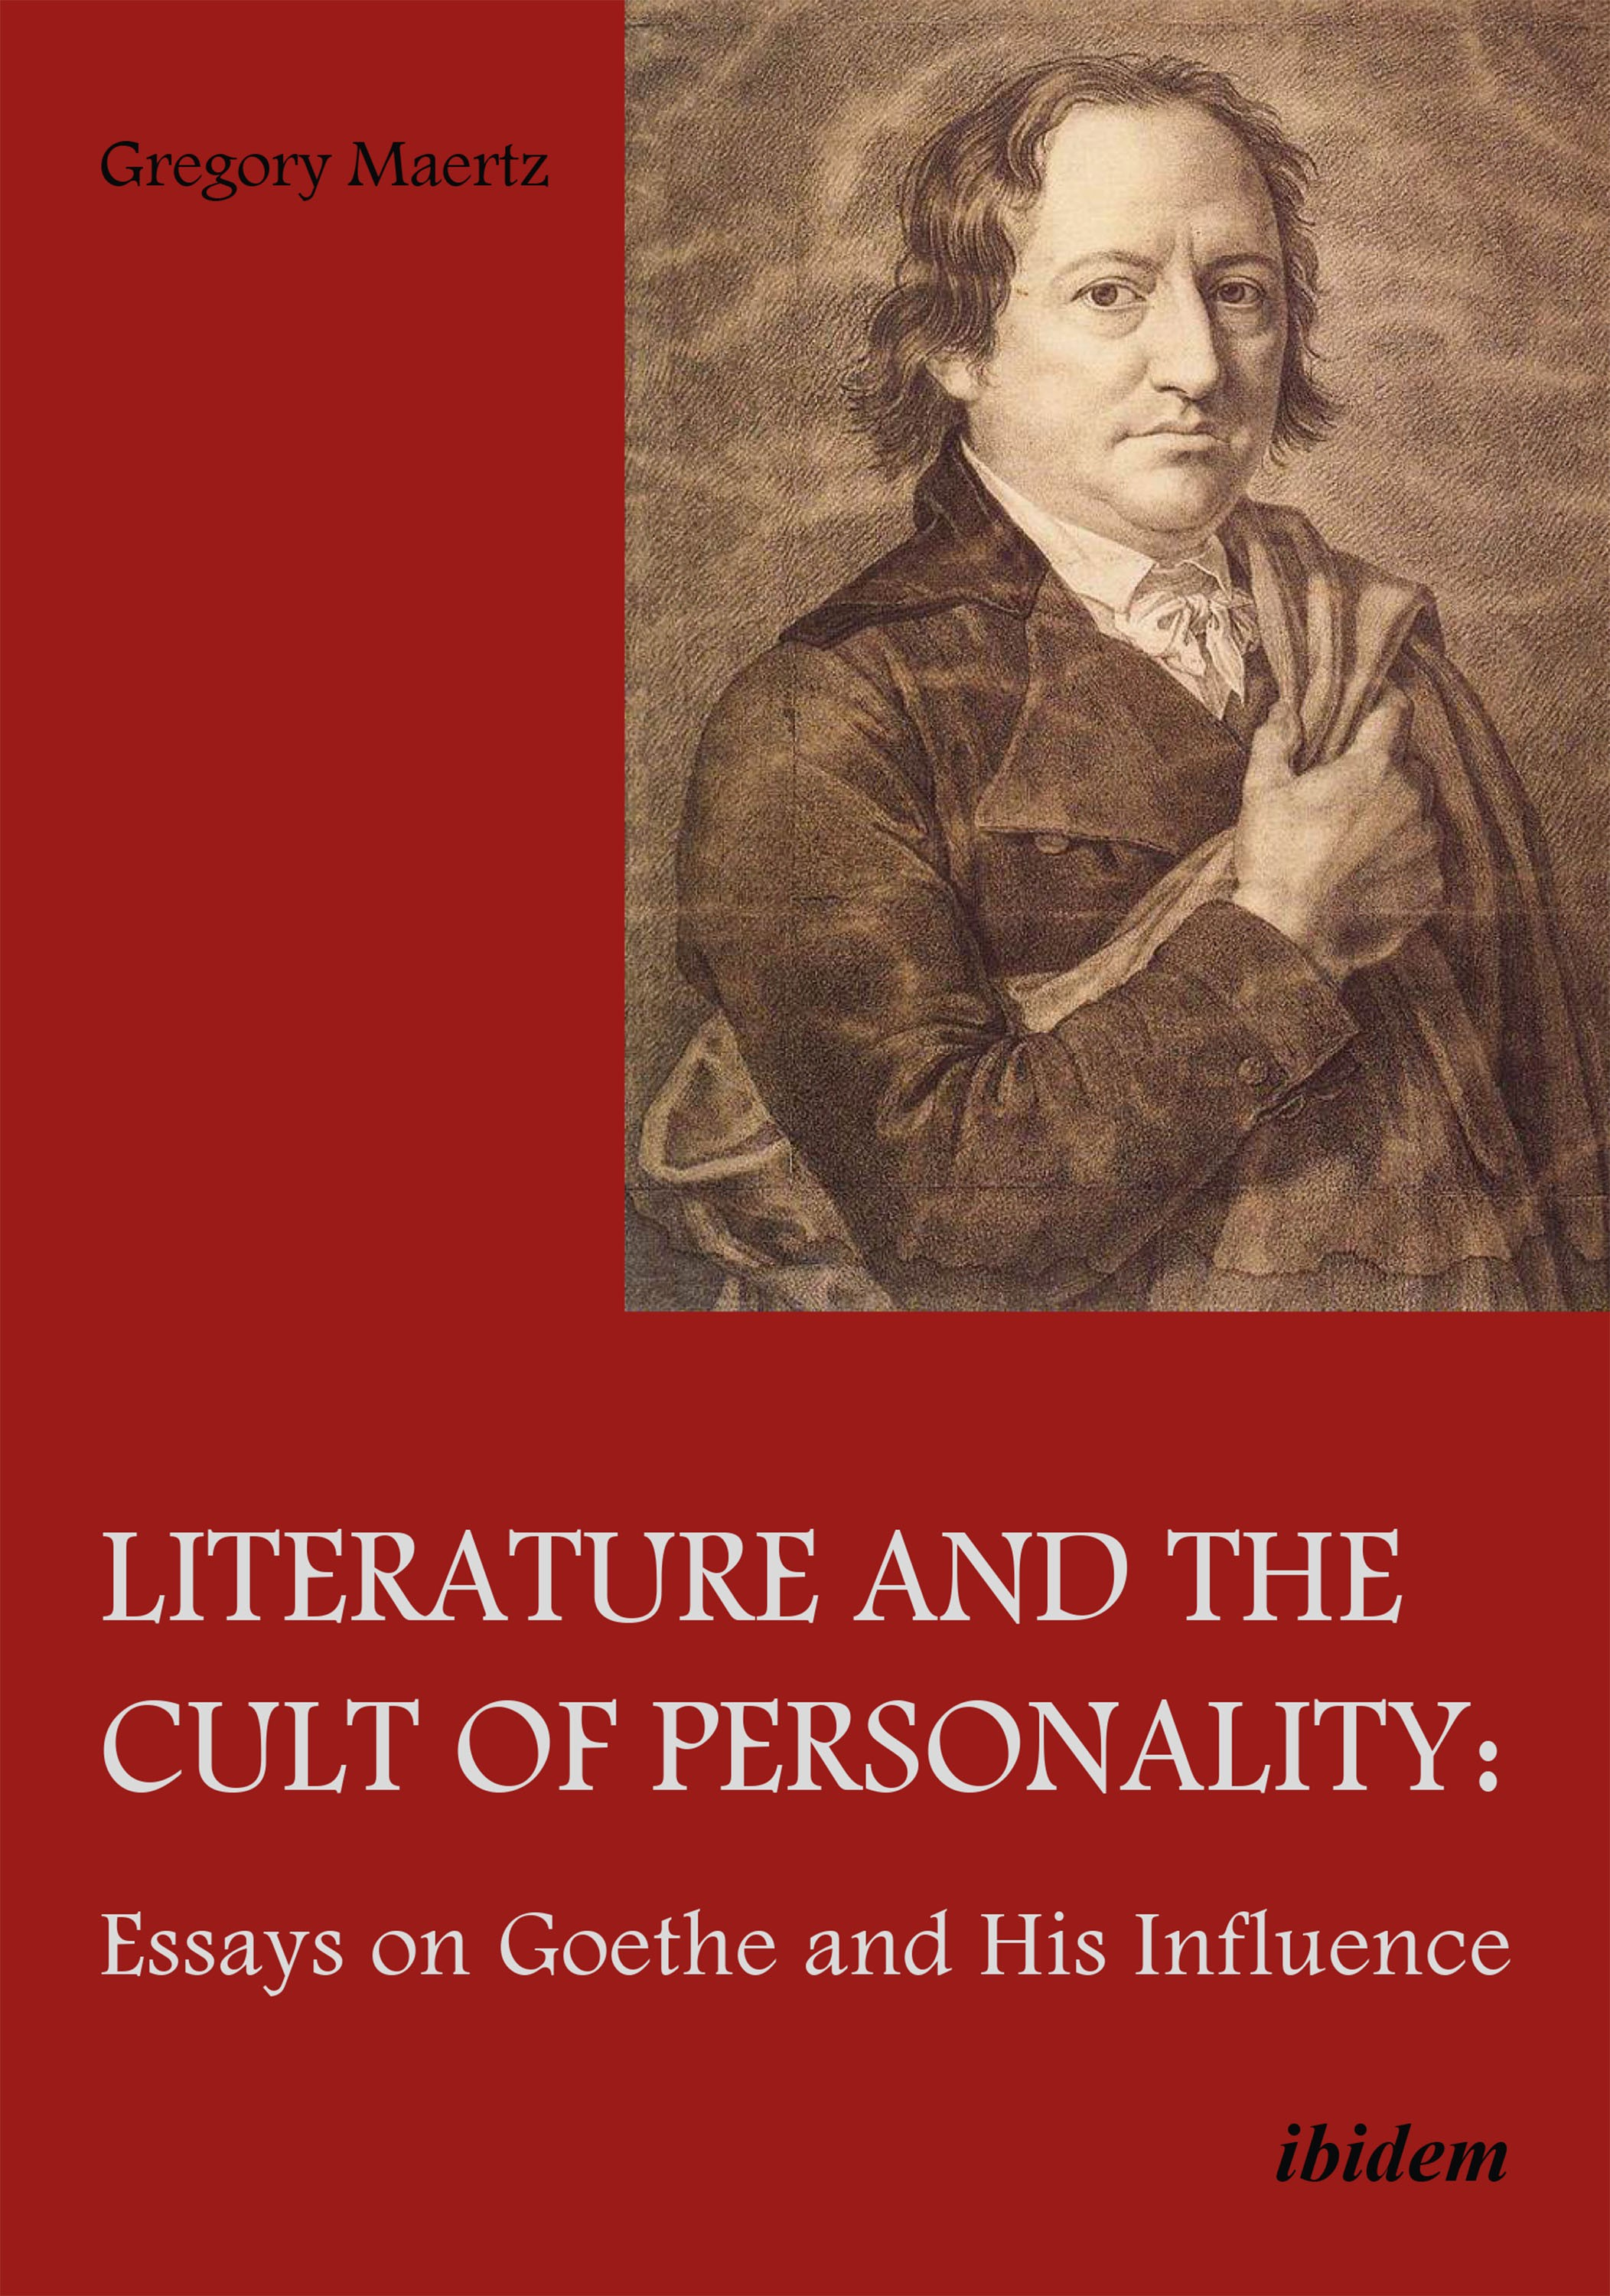 Literature and the Cult of Personality